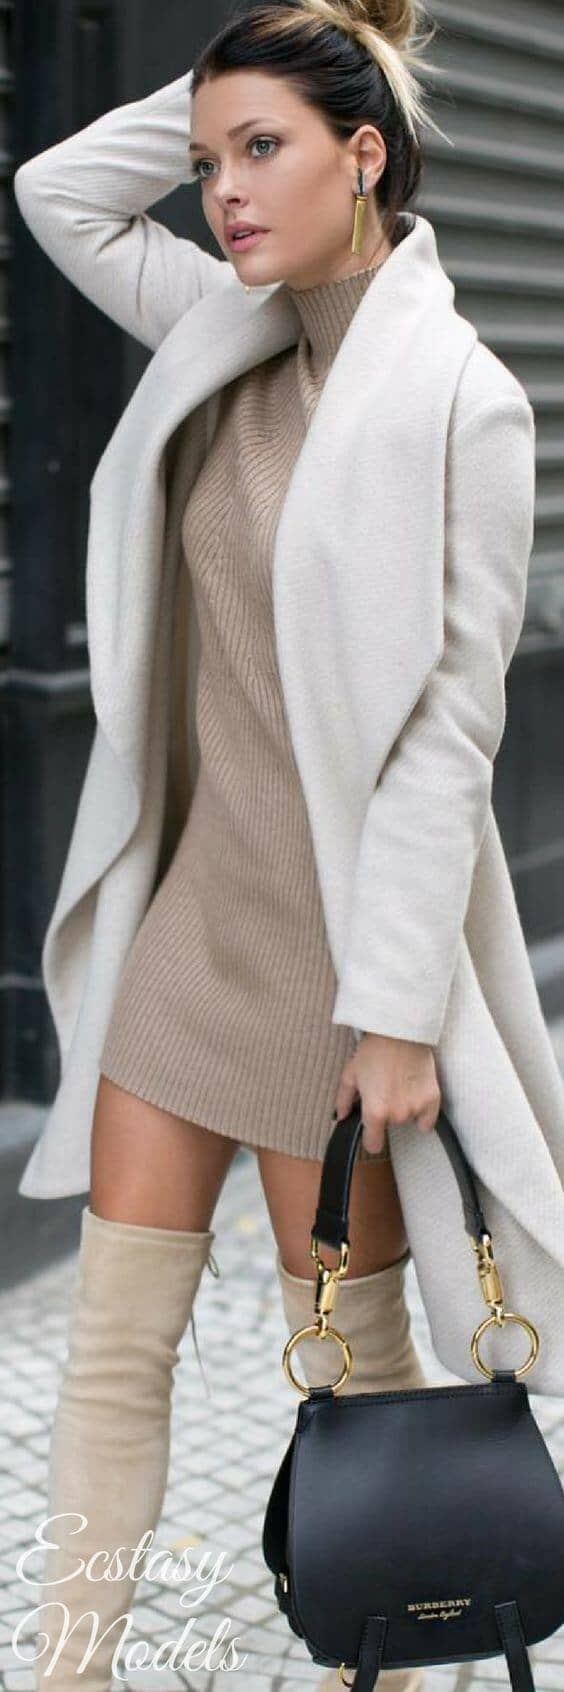 Sexy but Sophisticated Winter Outfits for Work